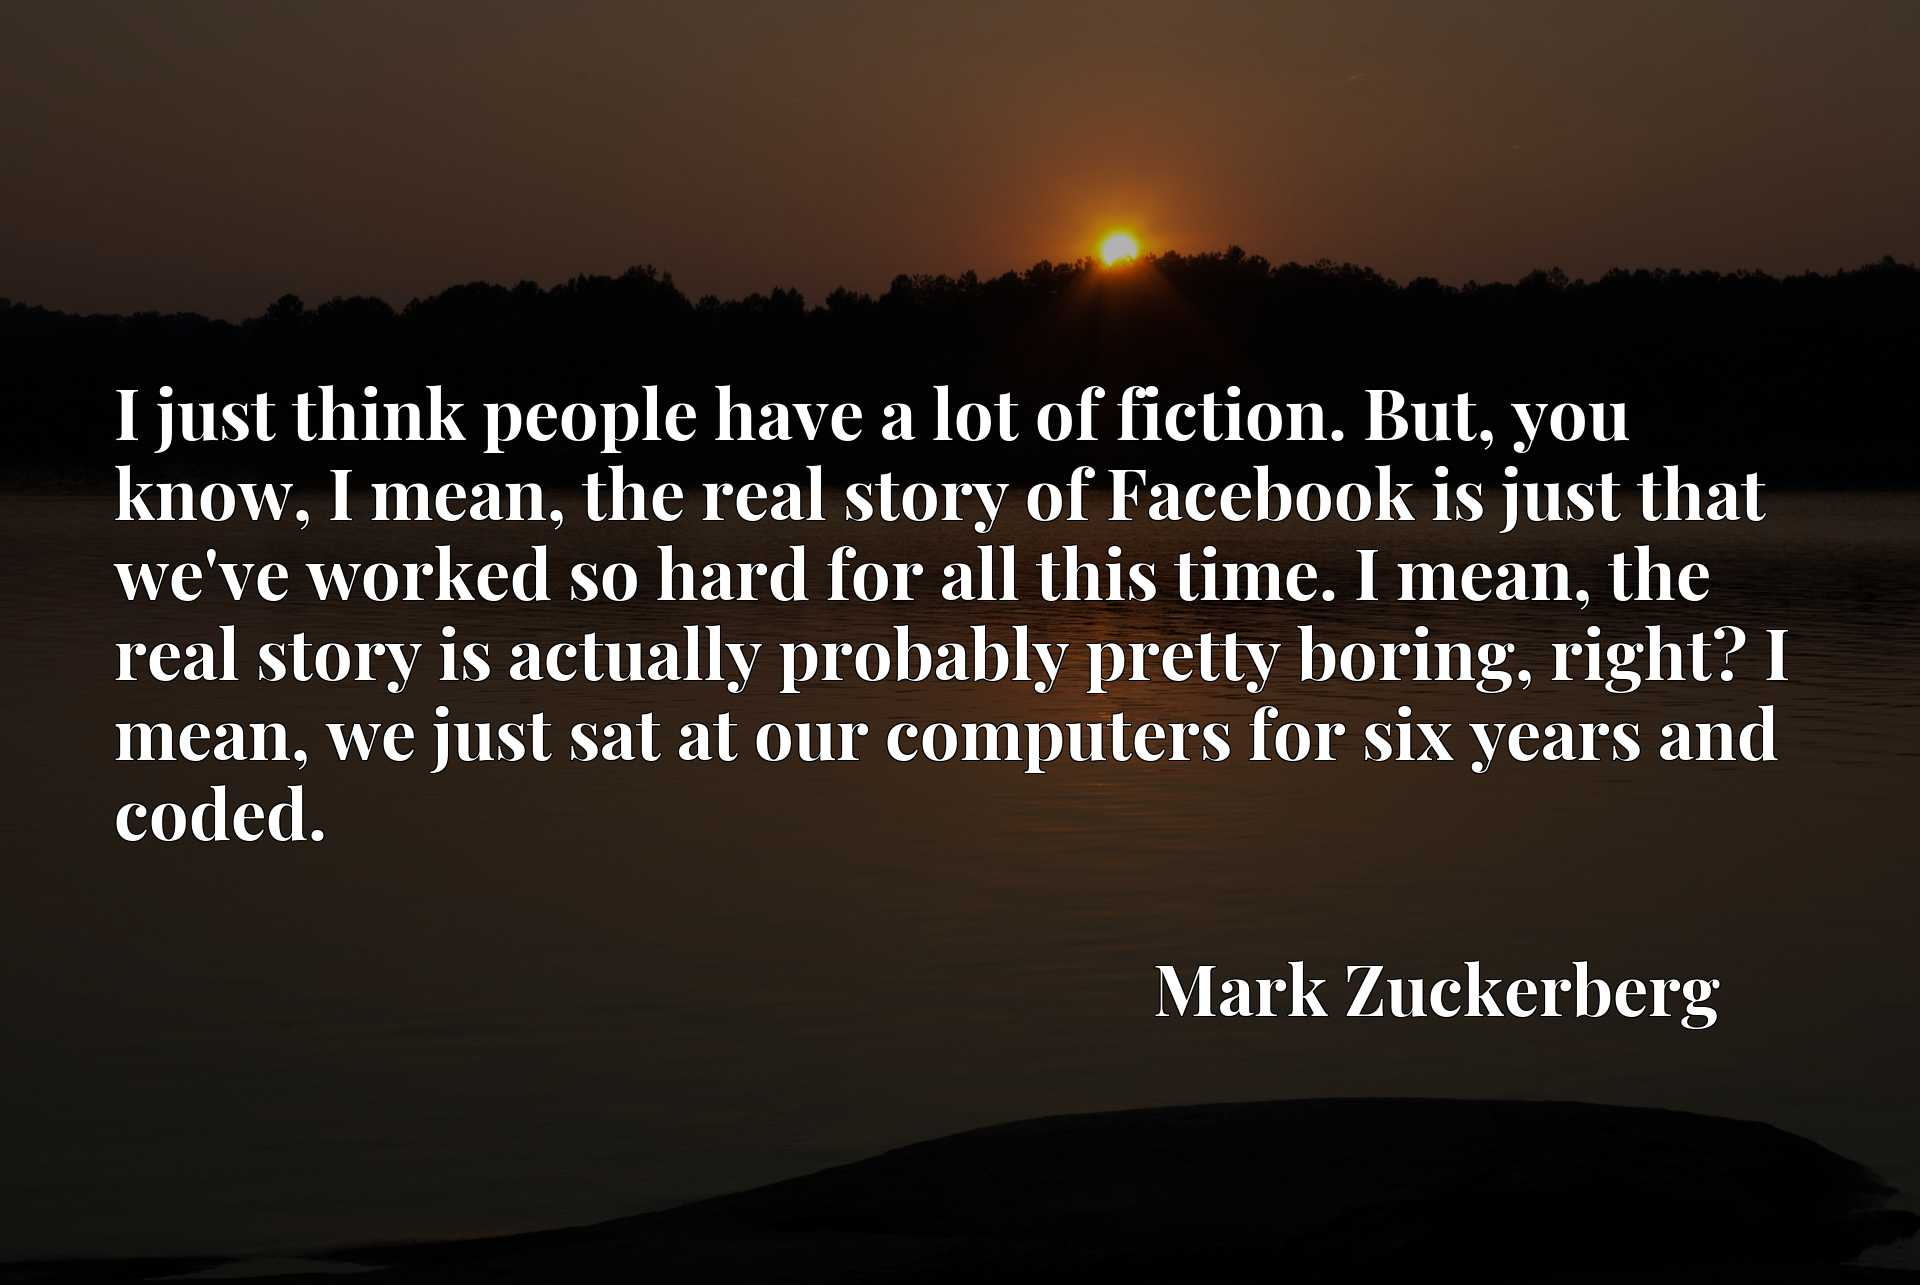 I just think people have a lot of fiction. But, you know, I mean, the real story of Facebook is just that we've worked so hard for all this time. I mean, the real story is actually probably pretty boring, right? I mean, we just sat at our computers for six years and coded.